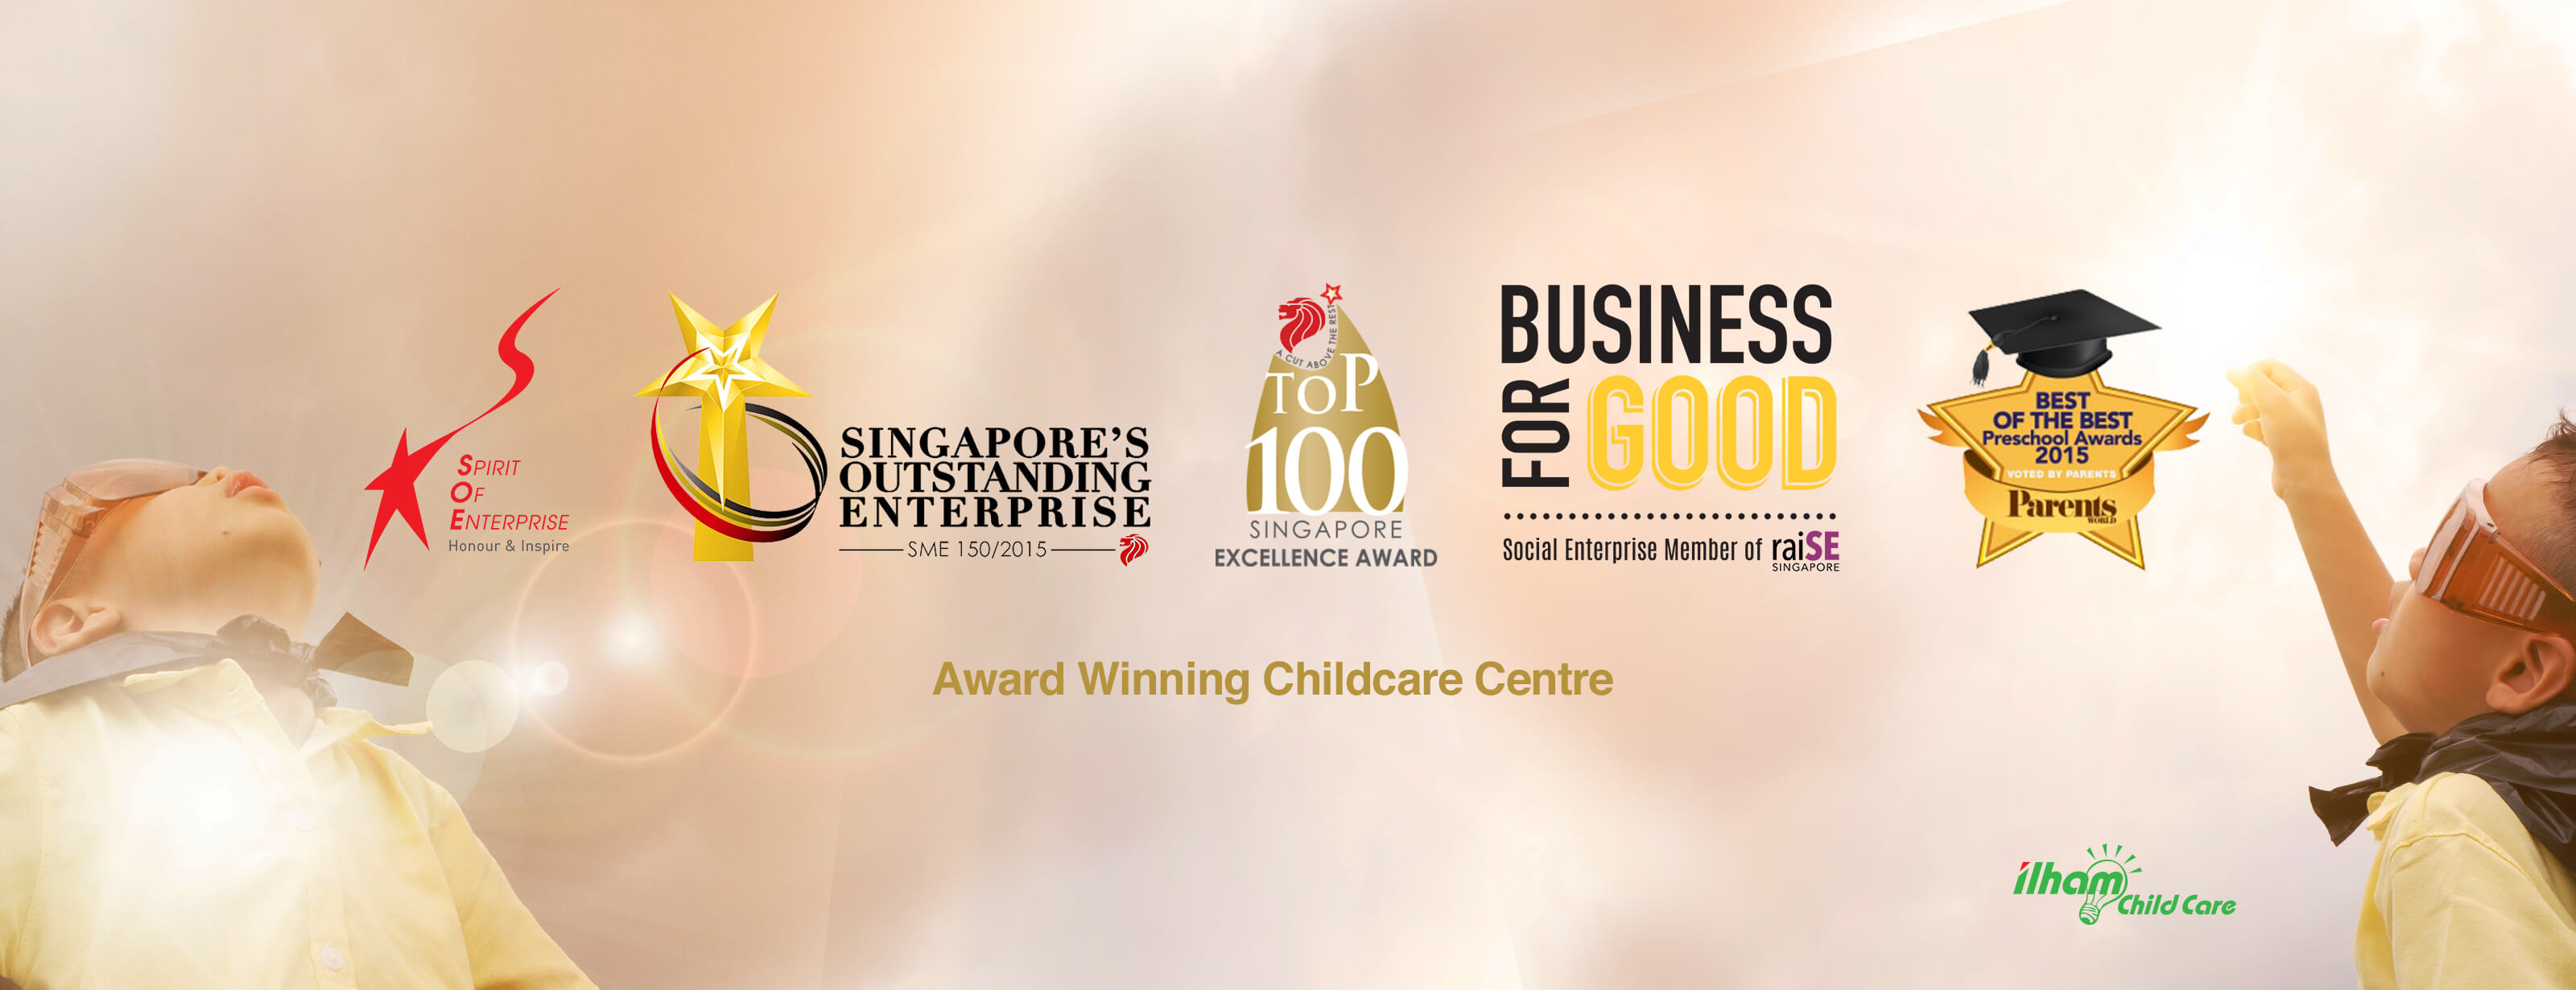 Singapore child care center - Award winning child care